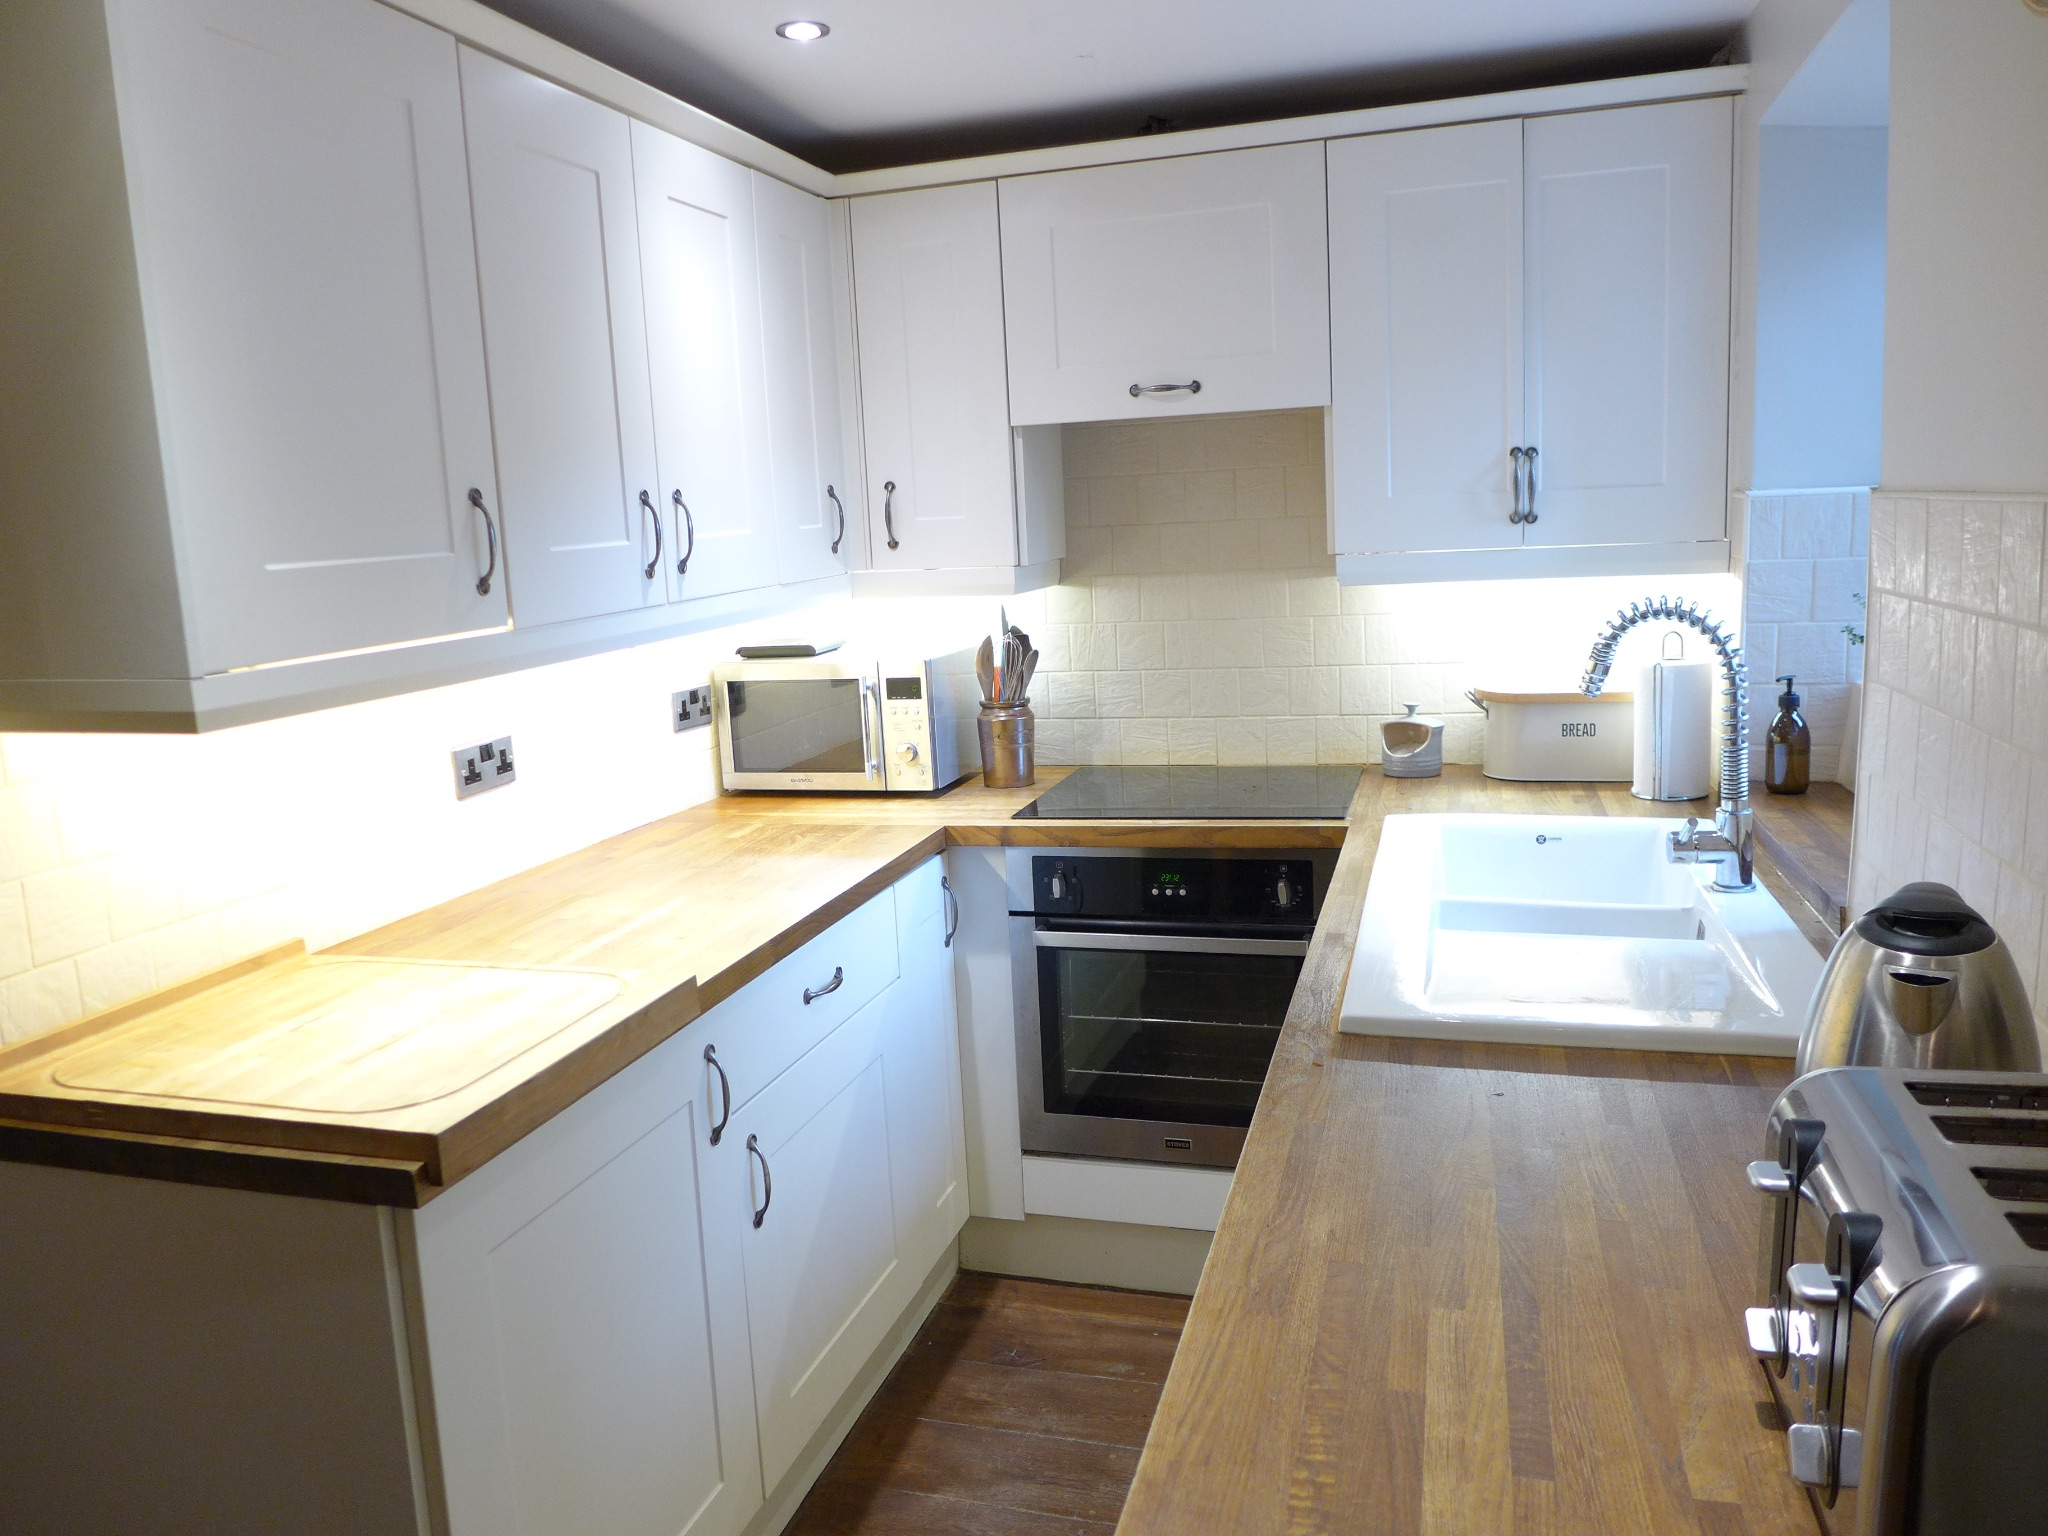 2 bedroom cottage house For Sale in Calderdale - Photograph 6.